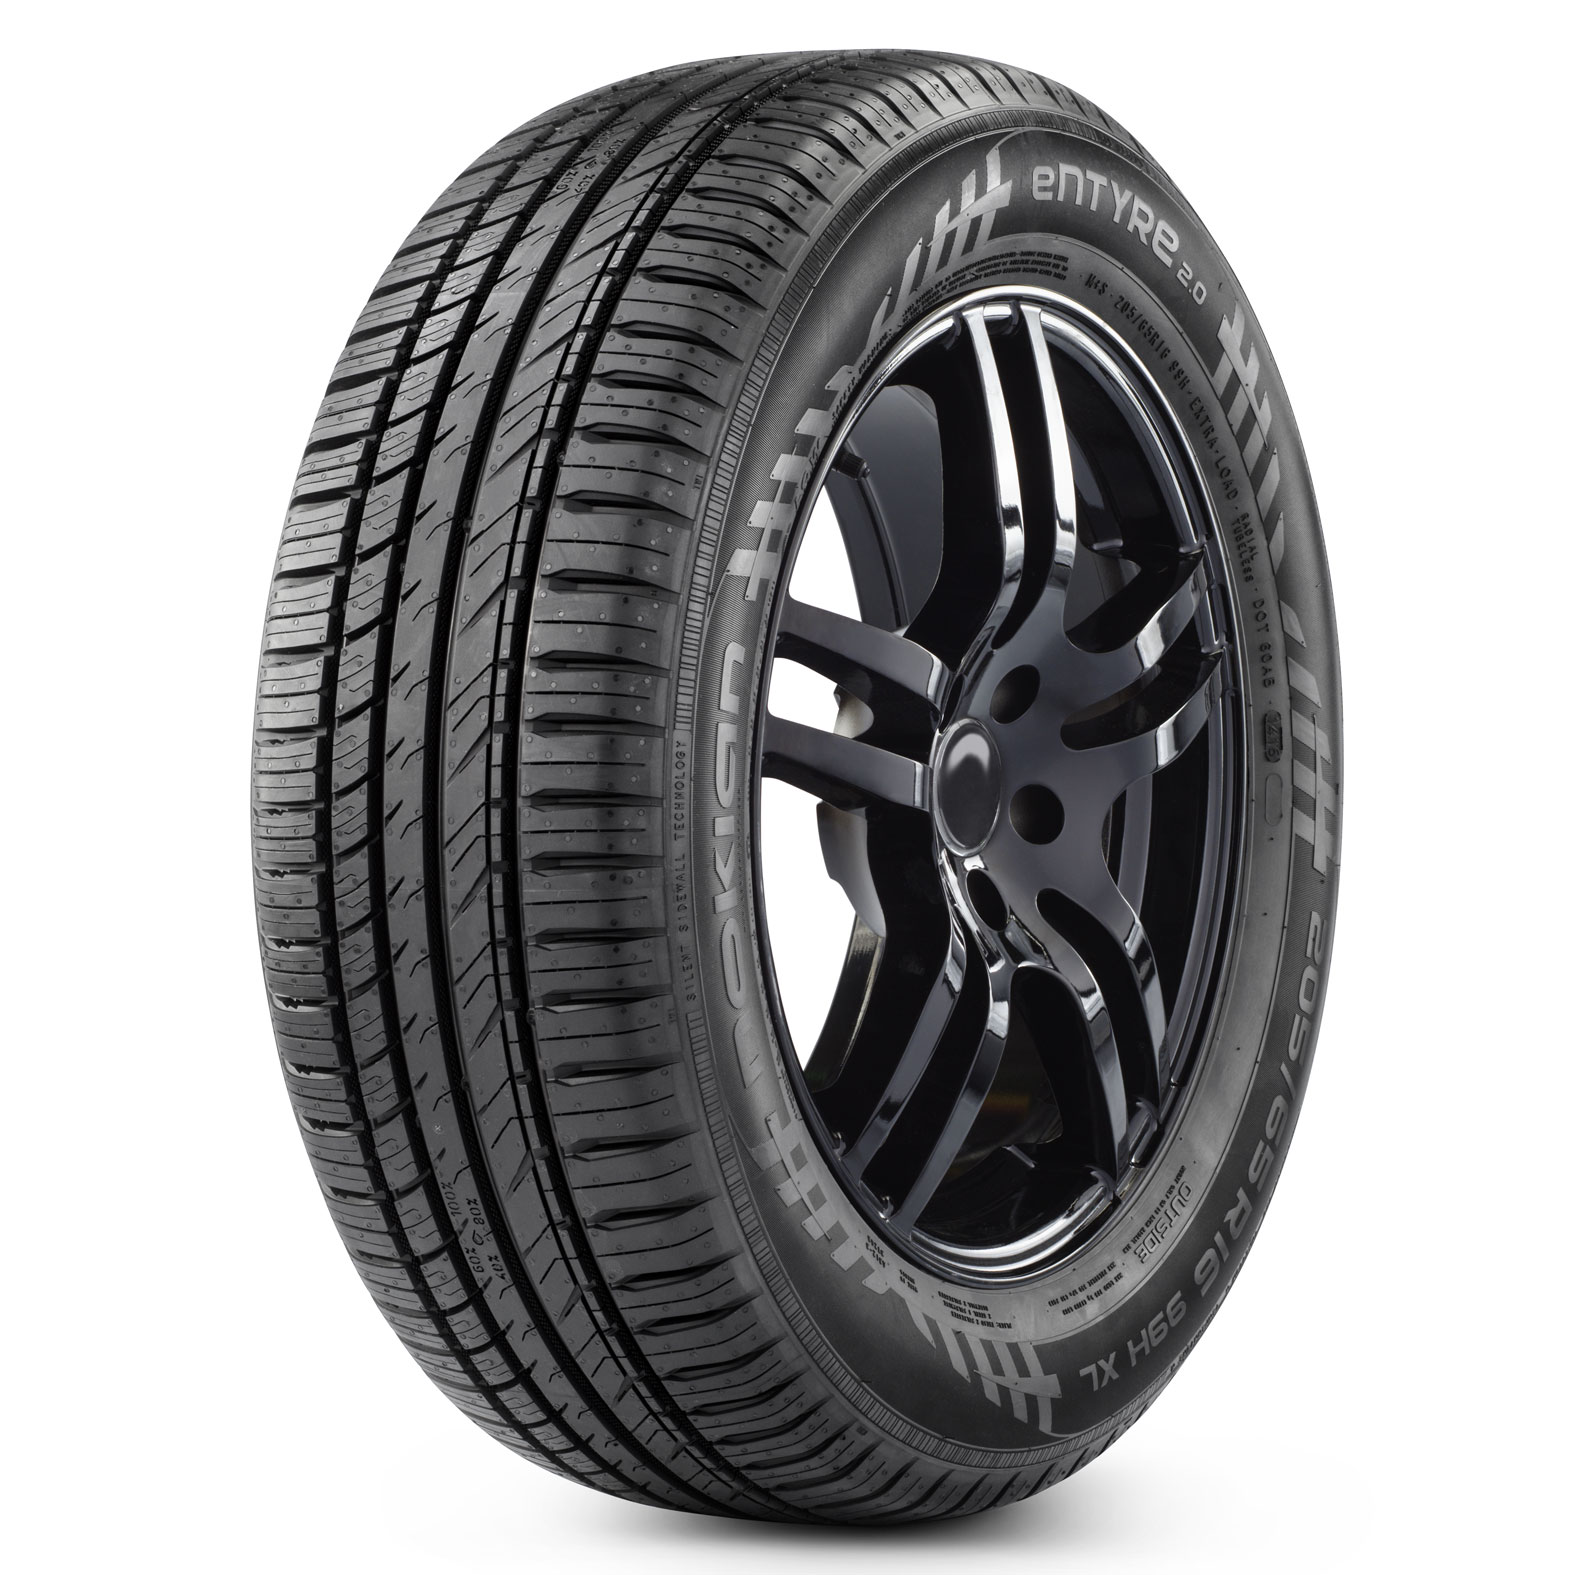 Nokian Tyres Entyre 2.0 tire - angle